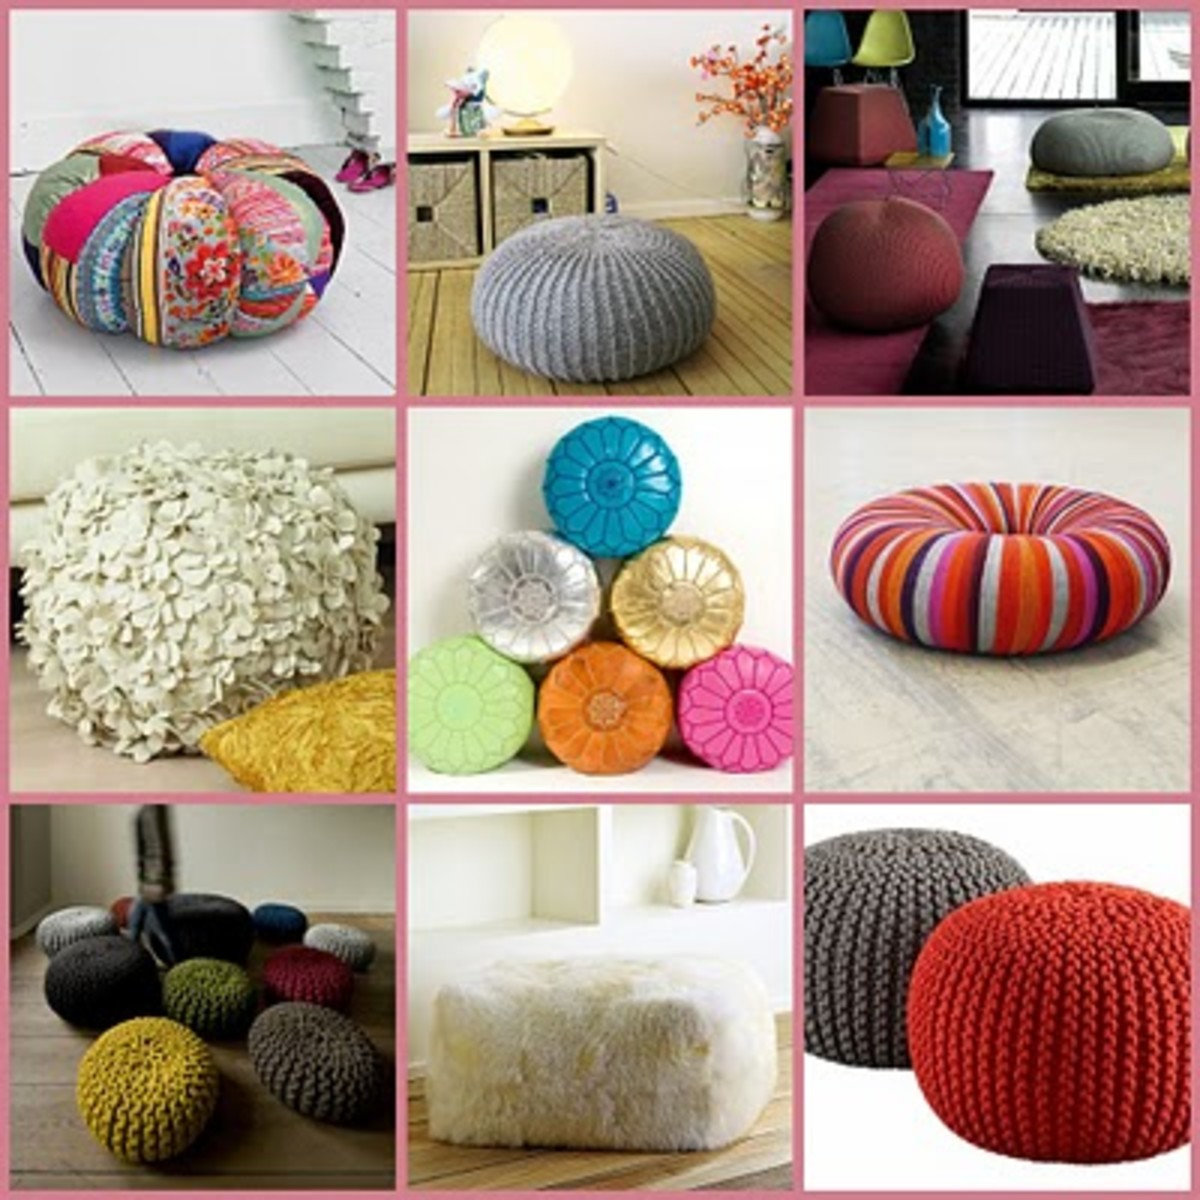 How To Make Bean Bags, Pillow Chairs & Floor Cushions ...